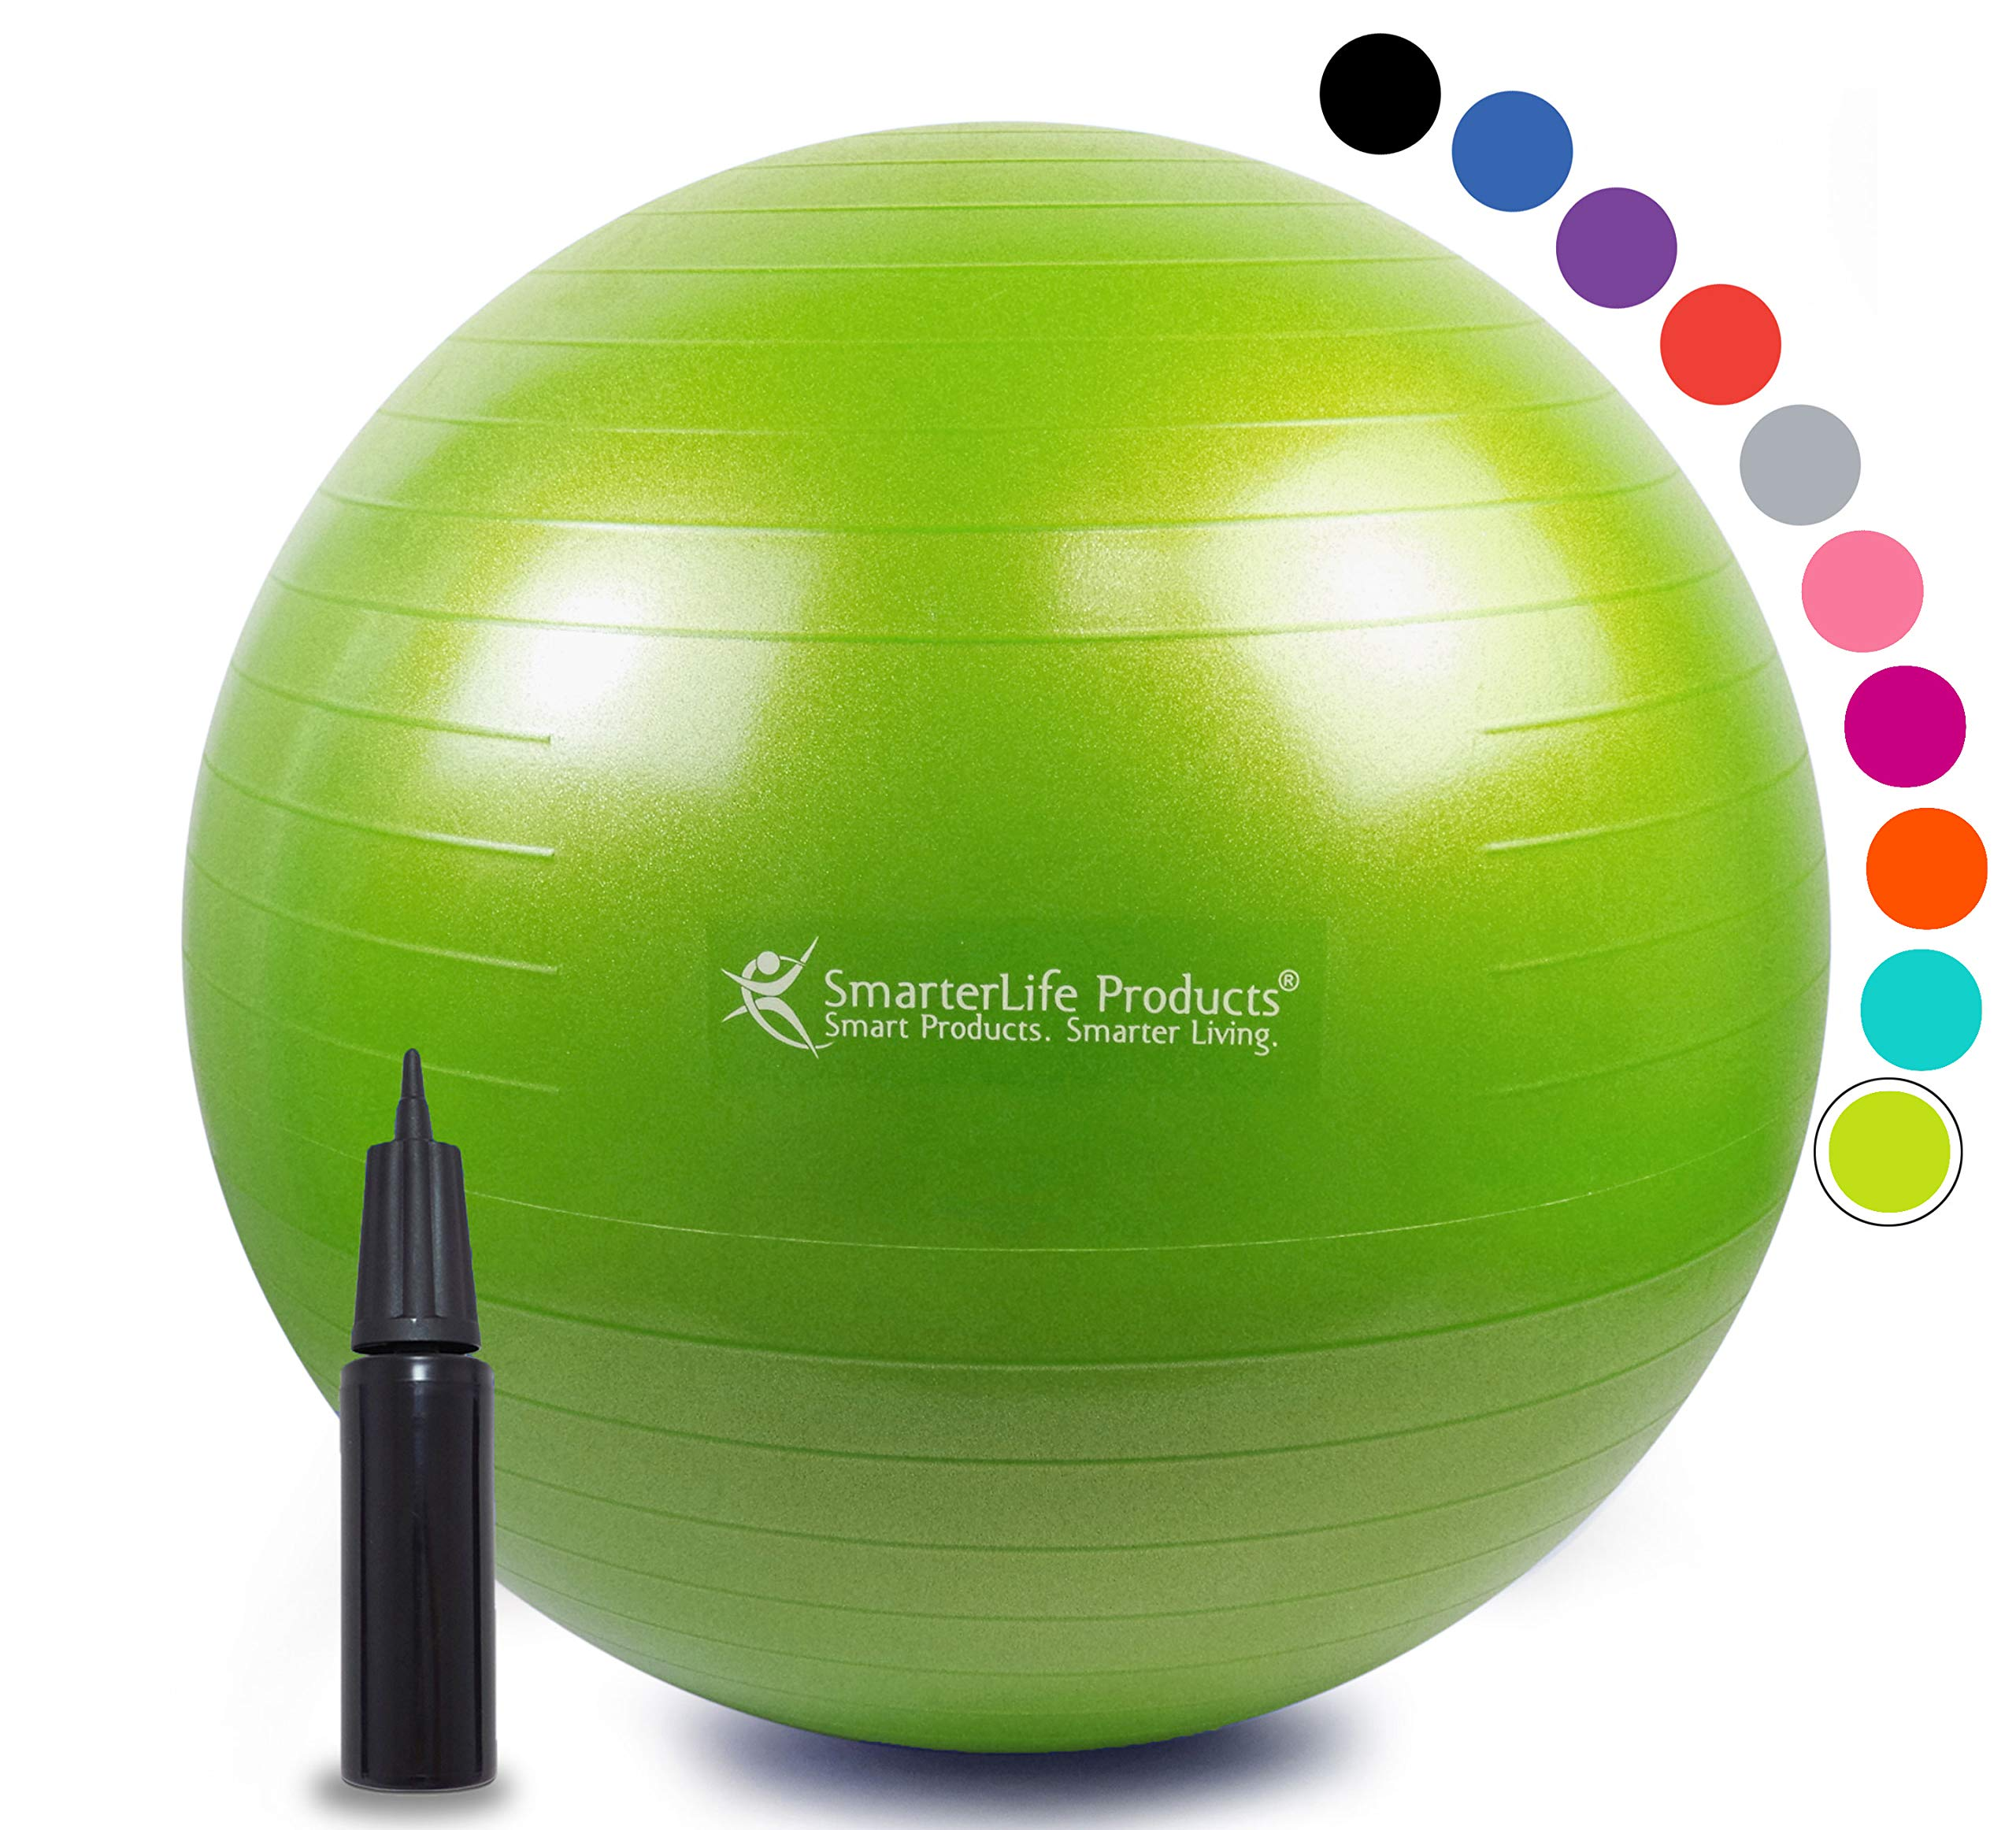 Exercise Ball for Yoga, Balance, Stability from SmarterLife - Fitness, Pilates, Birthing, Therapy, Office Ball Chair, Classroom Flexible Seating - Anti Burst, No Slip, Workout Guide (Lime, 45 cm)